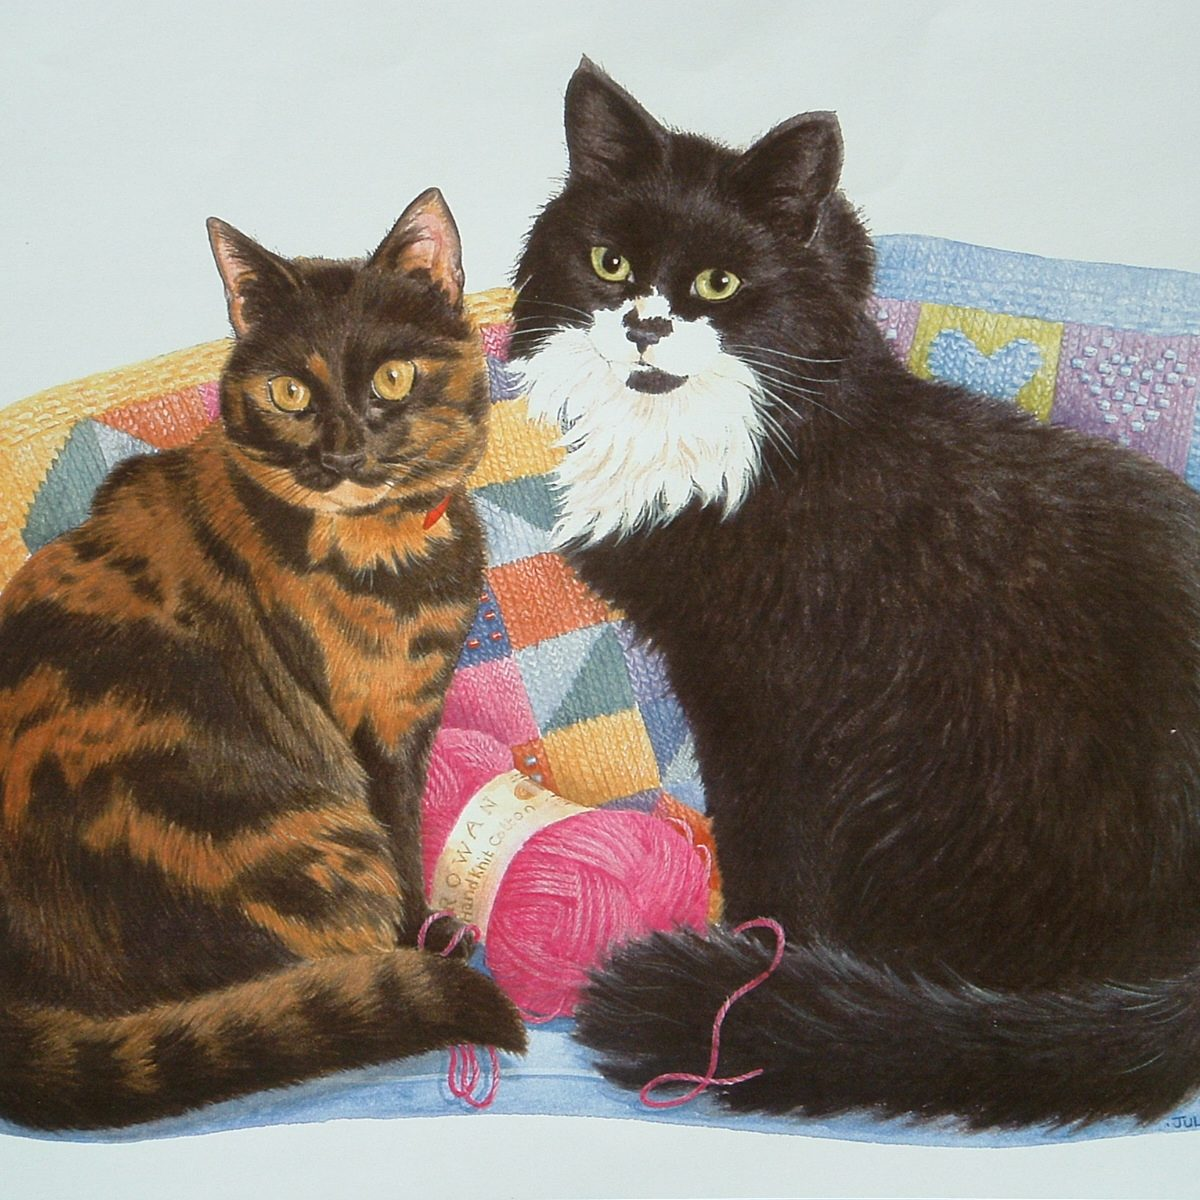 2 Jacob and Marcia Tortoiseshell cat and Black and White